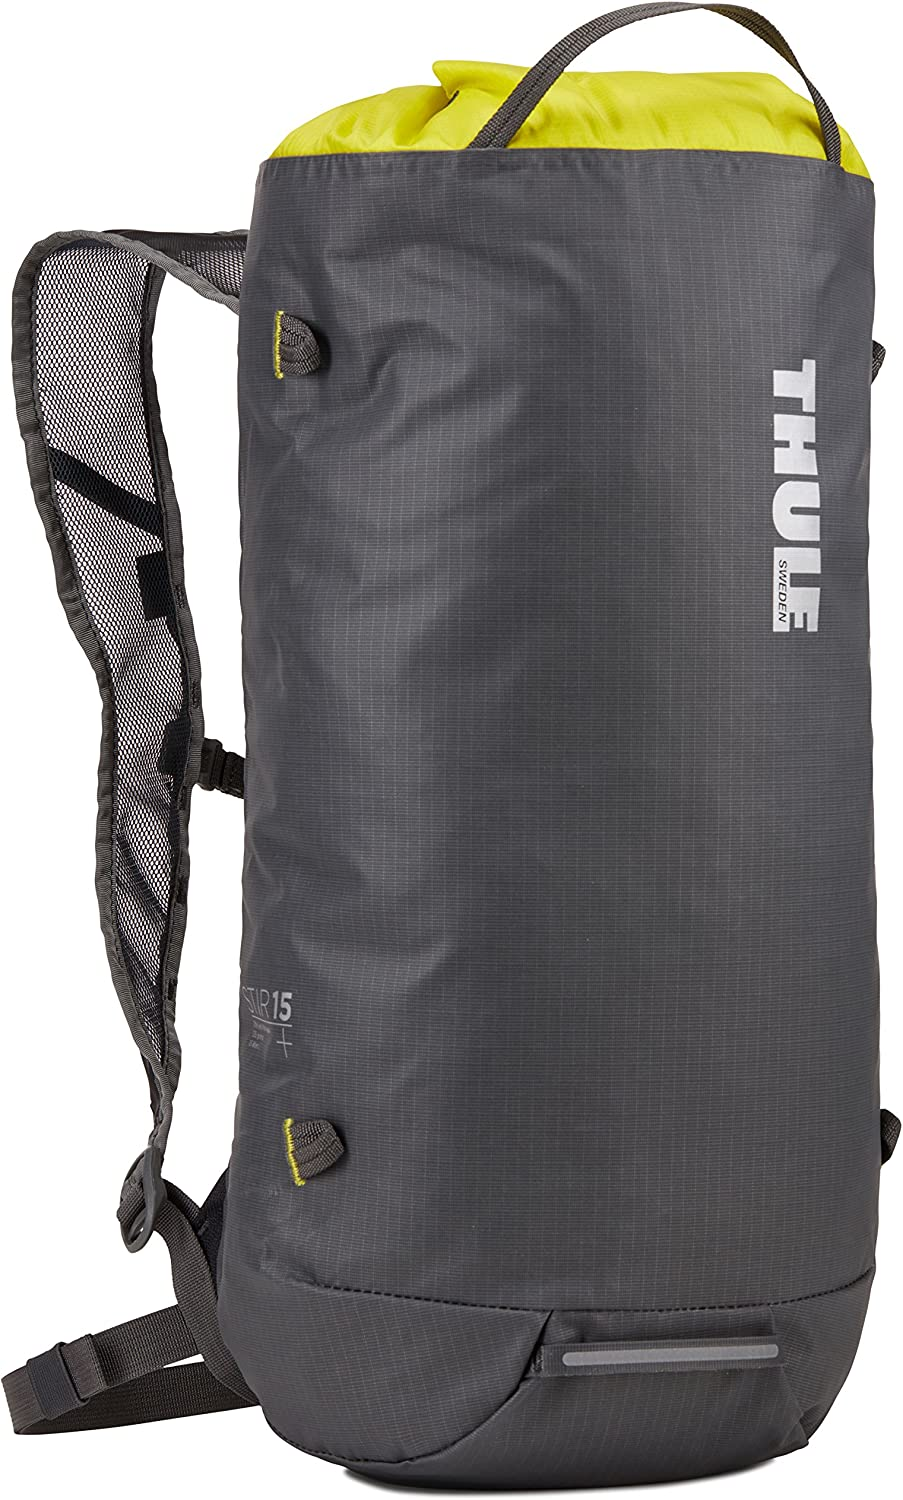 Thule Stir Unisex Hiking Pack